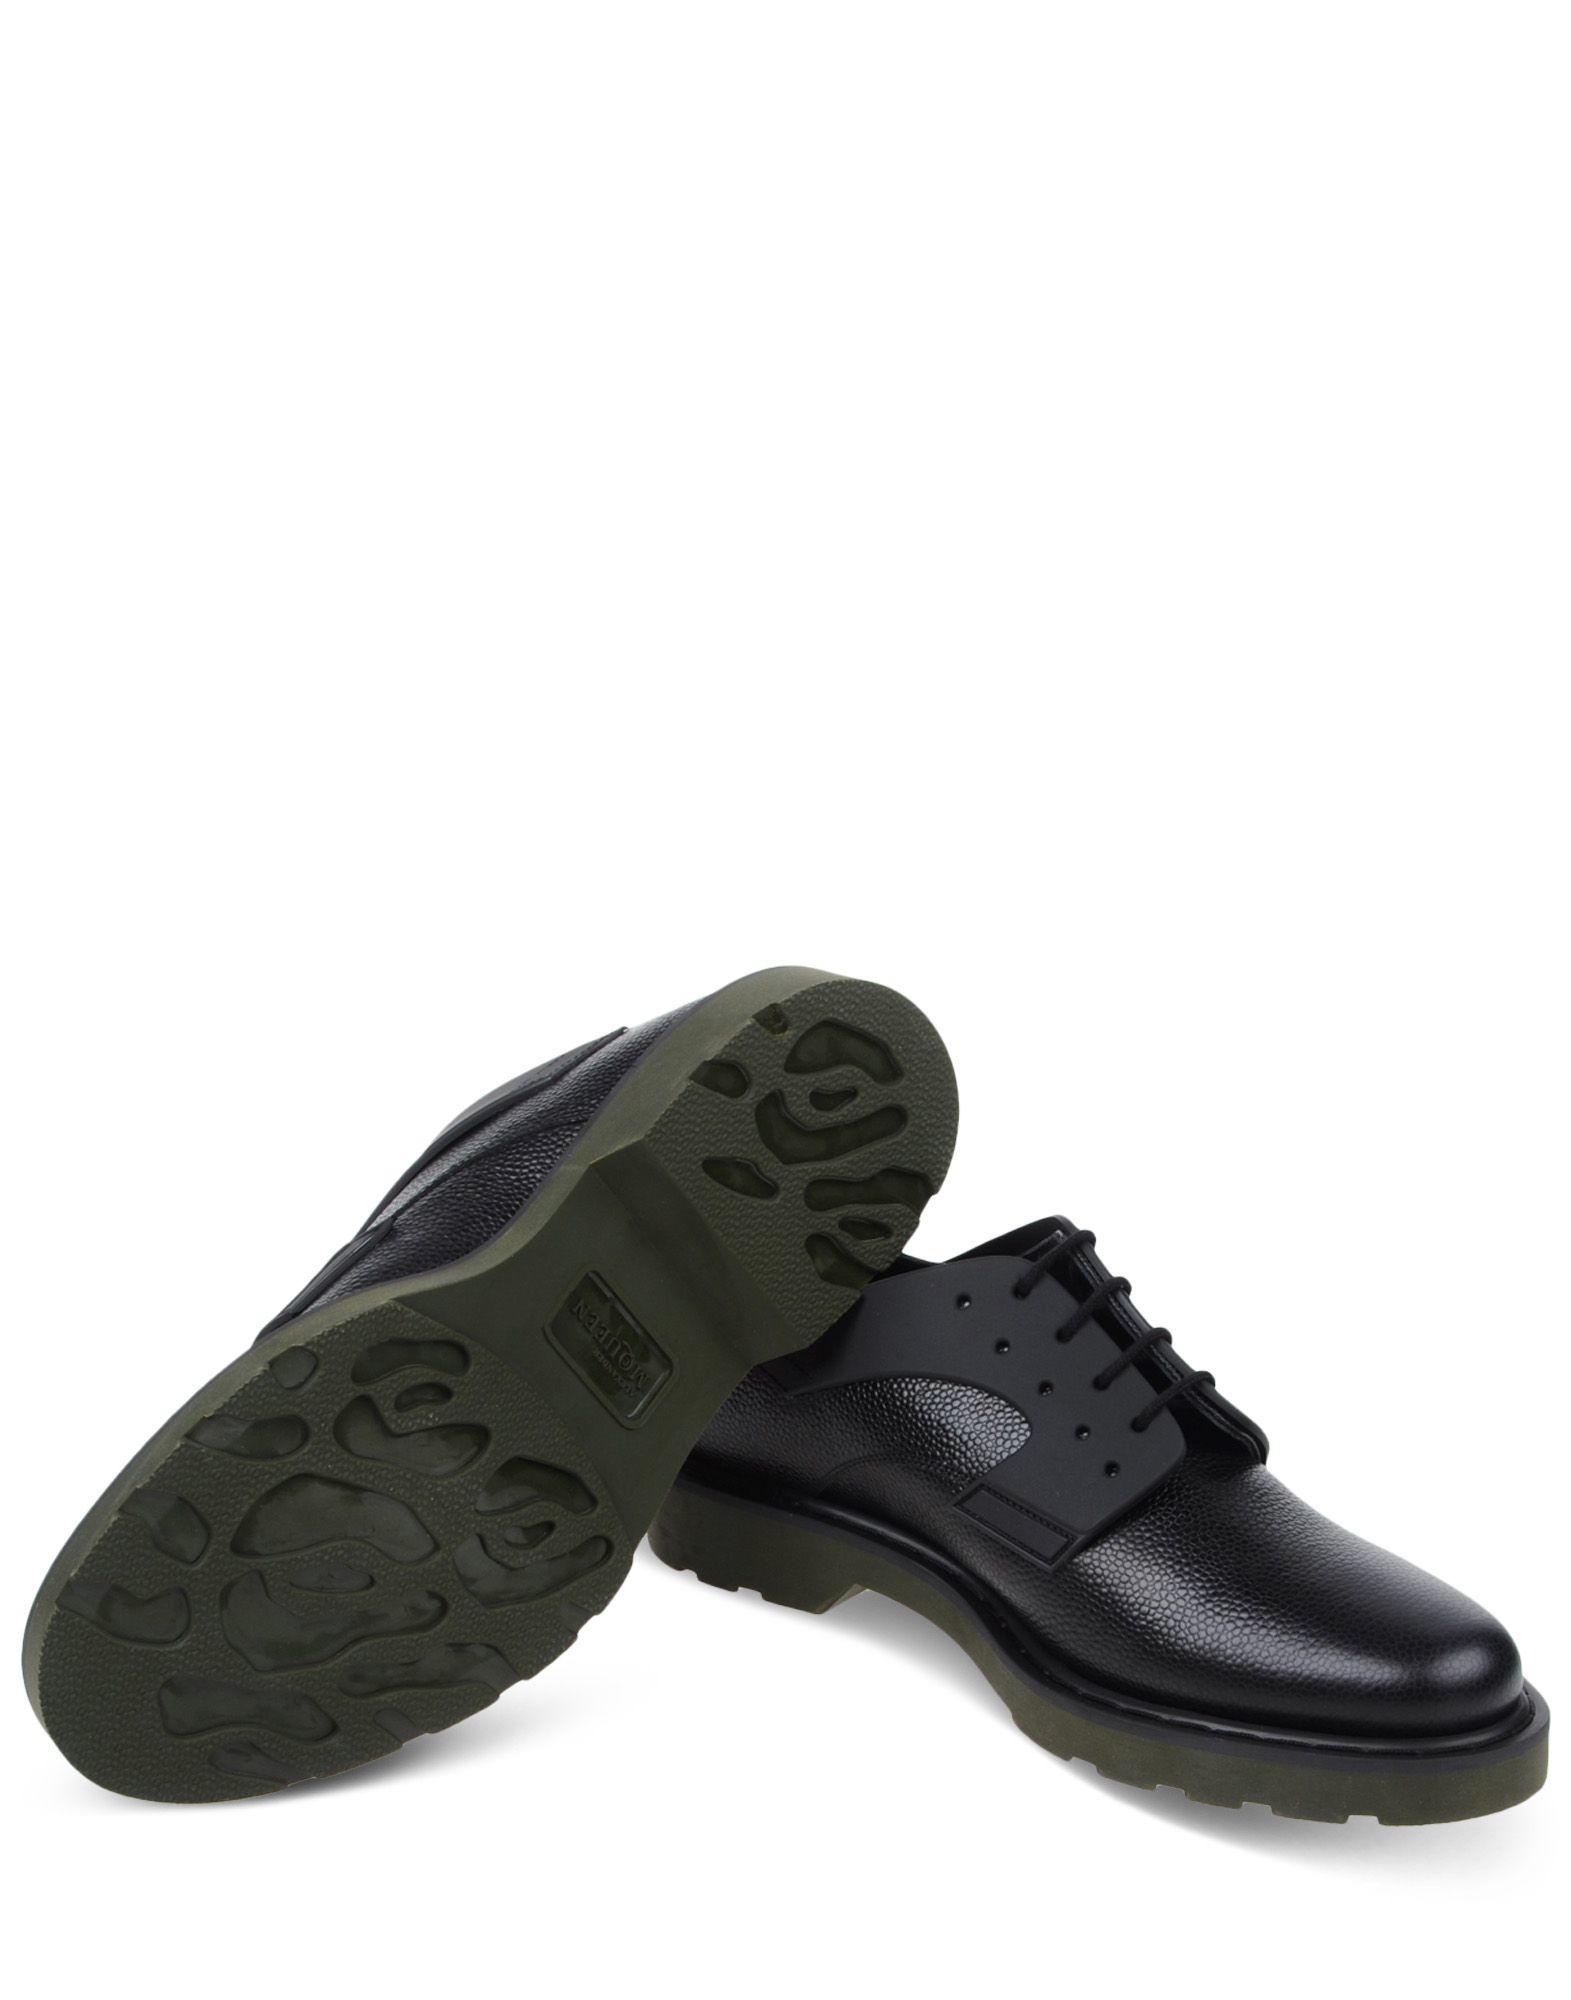 Alexander mcqueen Laced Shoes in Black for Men | Lyst